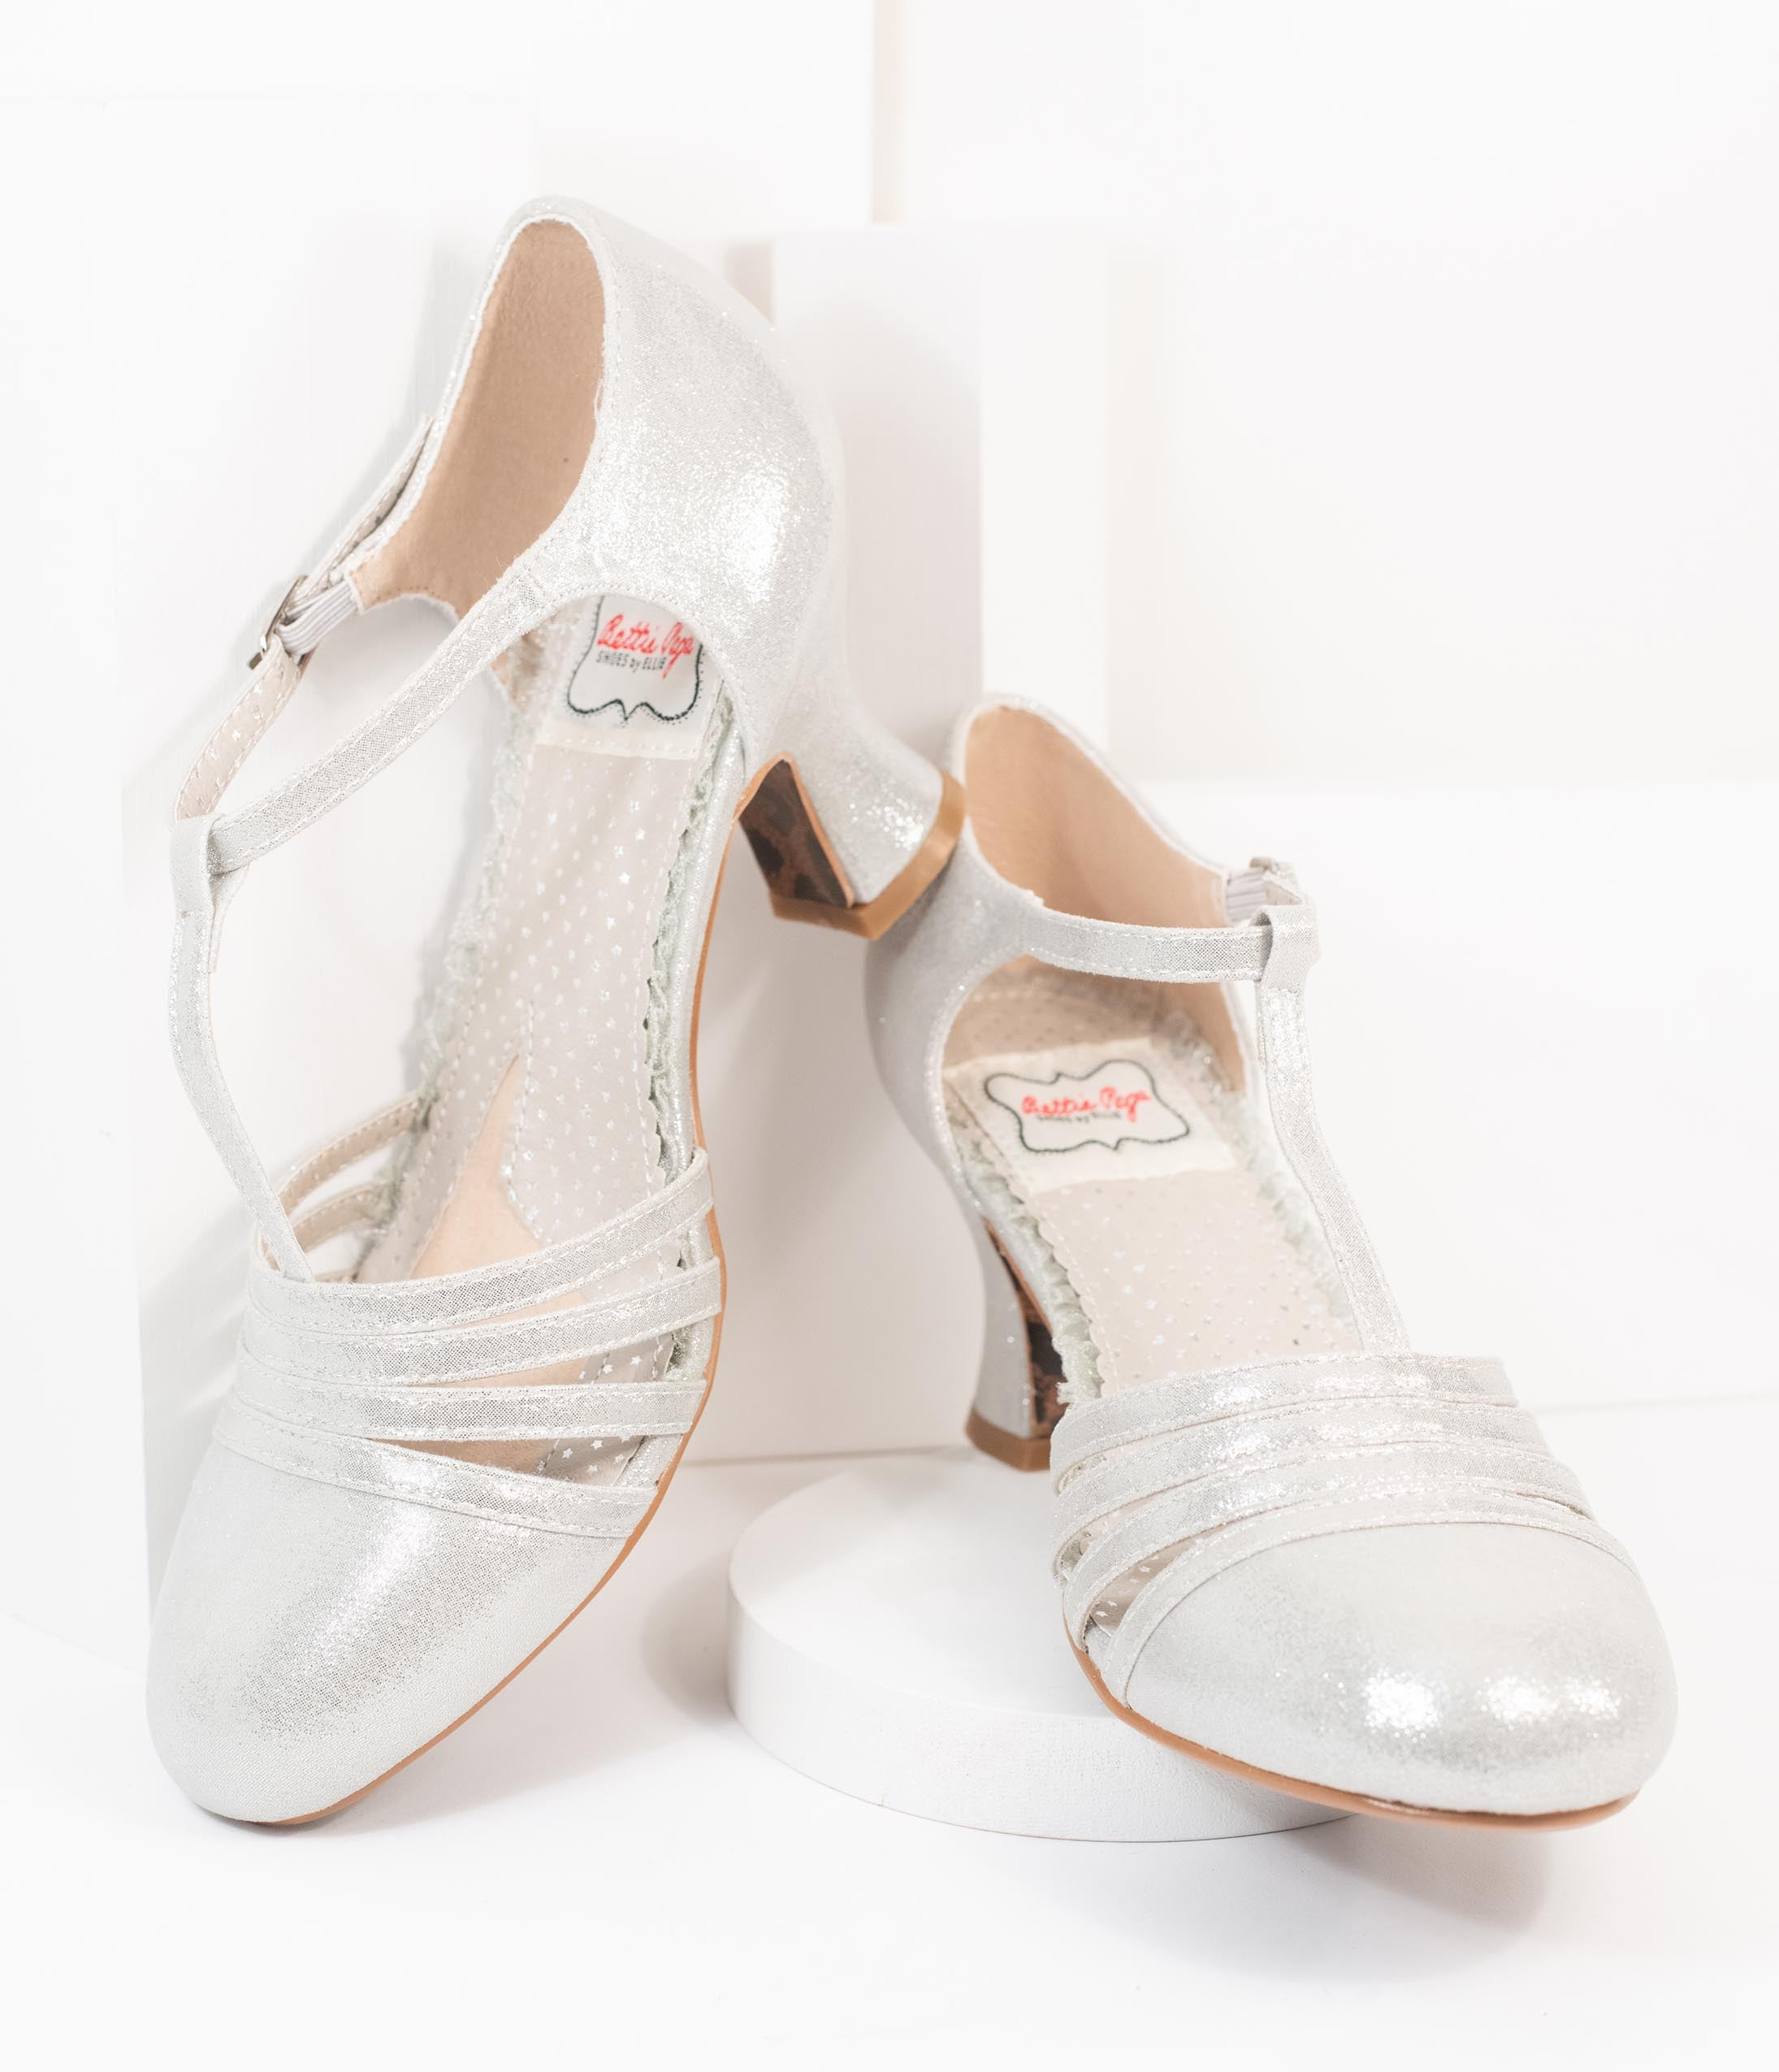 Pin Up Shoes- Heels, Pumps & Flats Bettie Page Metallic Silver Sammy T-Strap Heels $78.00 AT vintagedancer.com